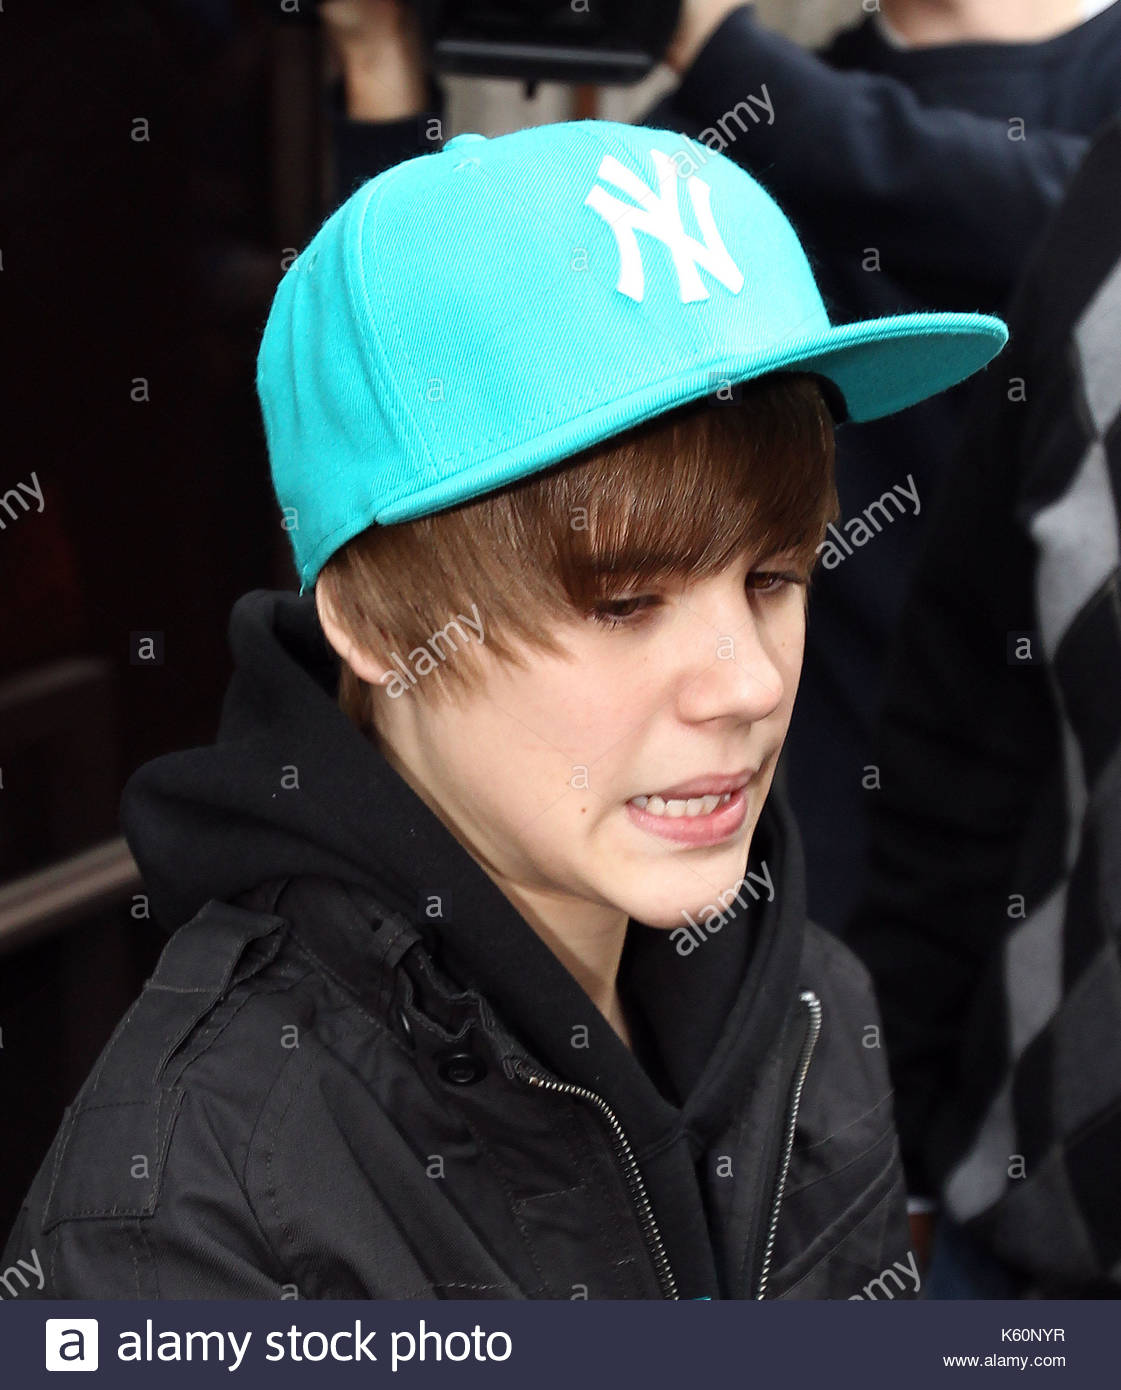 Are not Cdt teen sensation justin bieber opinion you